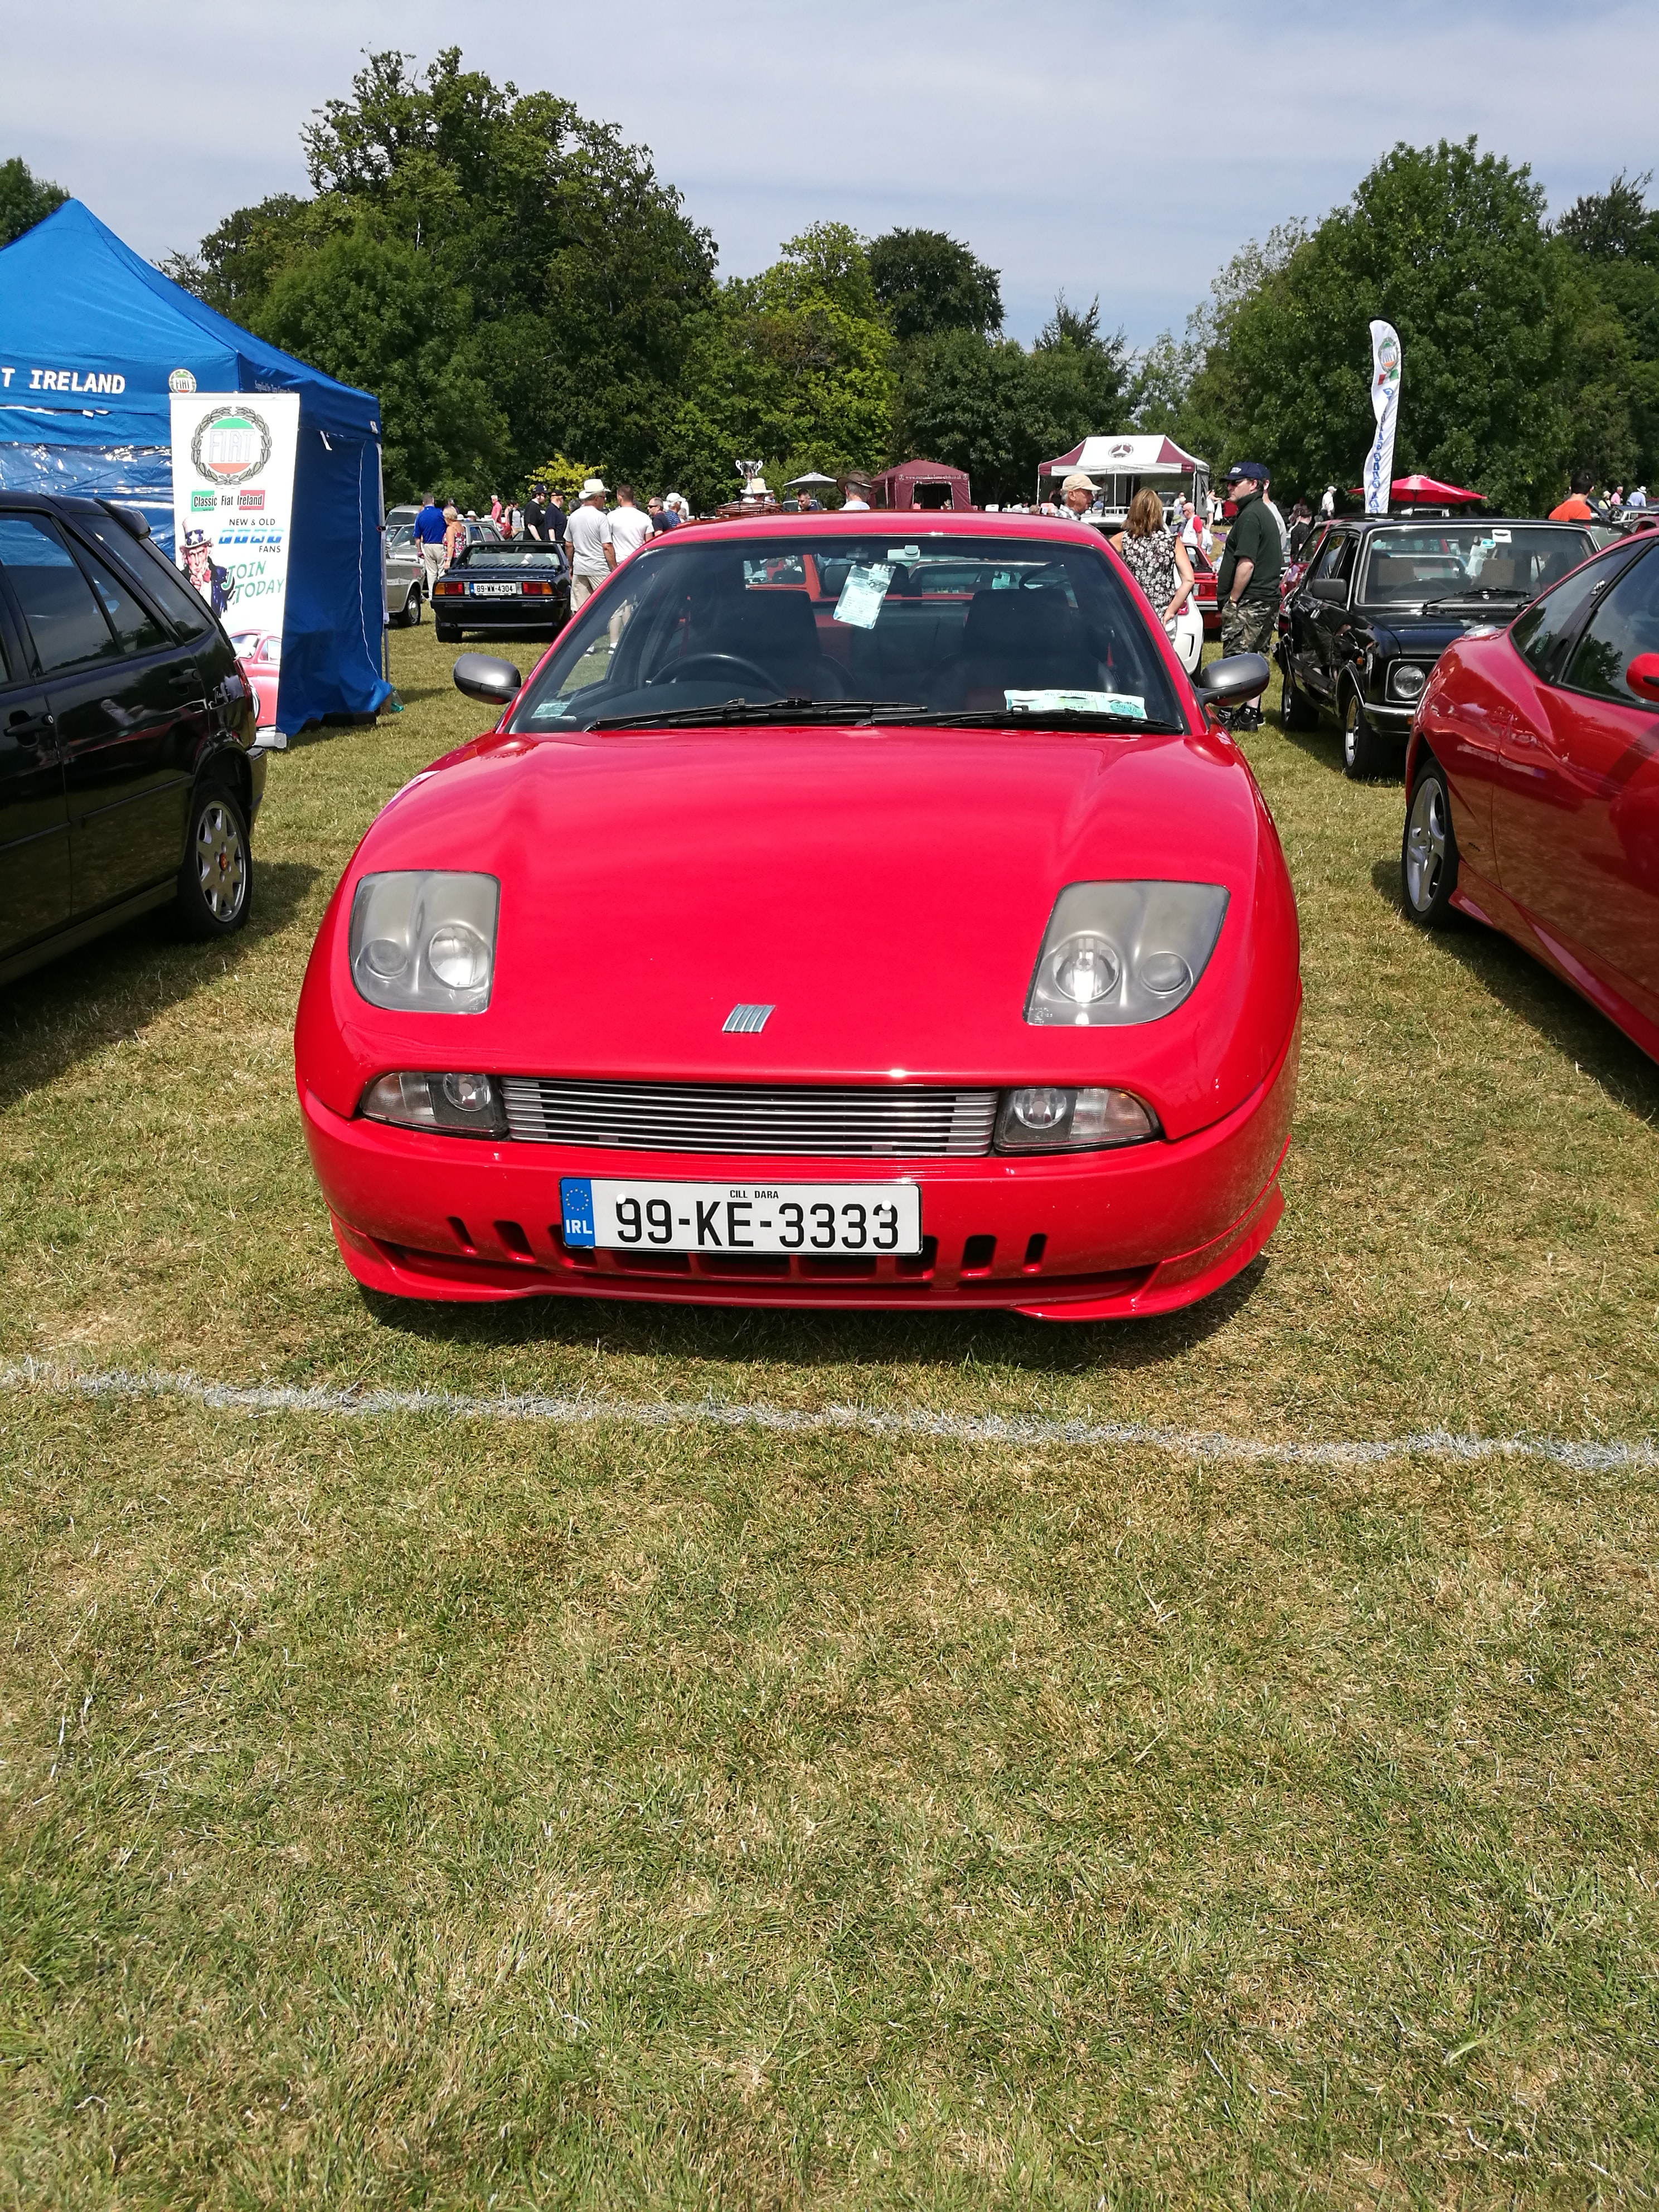 A very nice Fiat Coupe LE